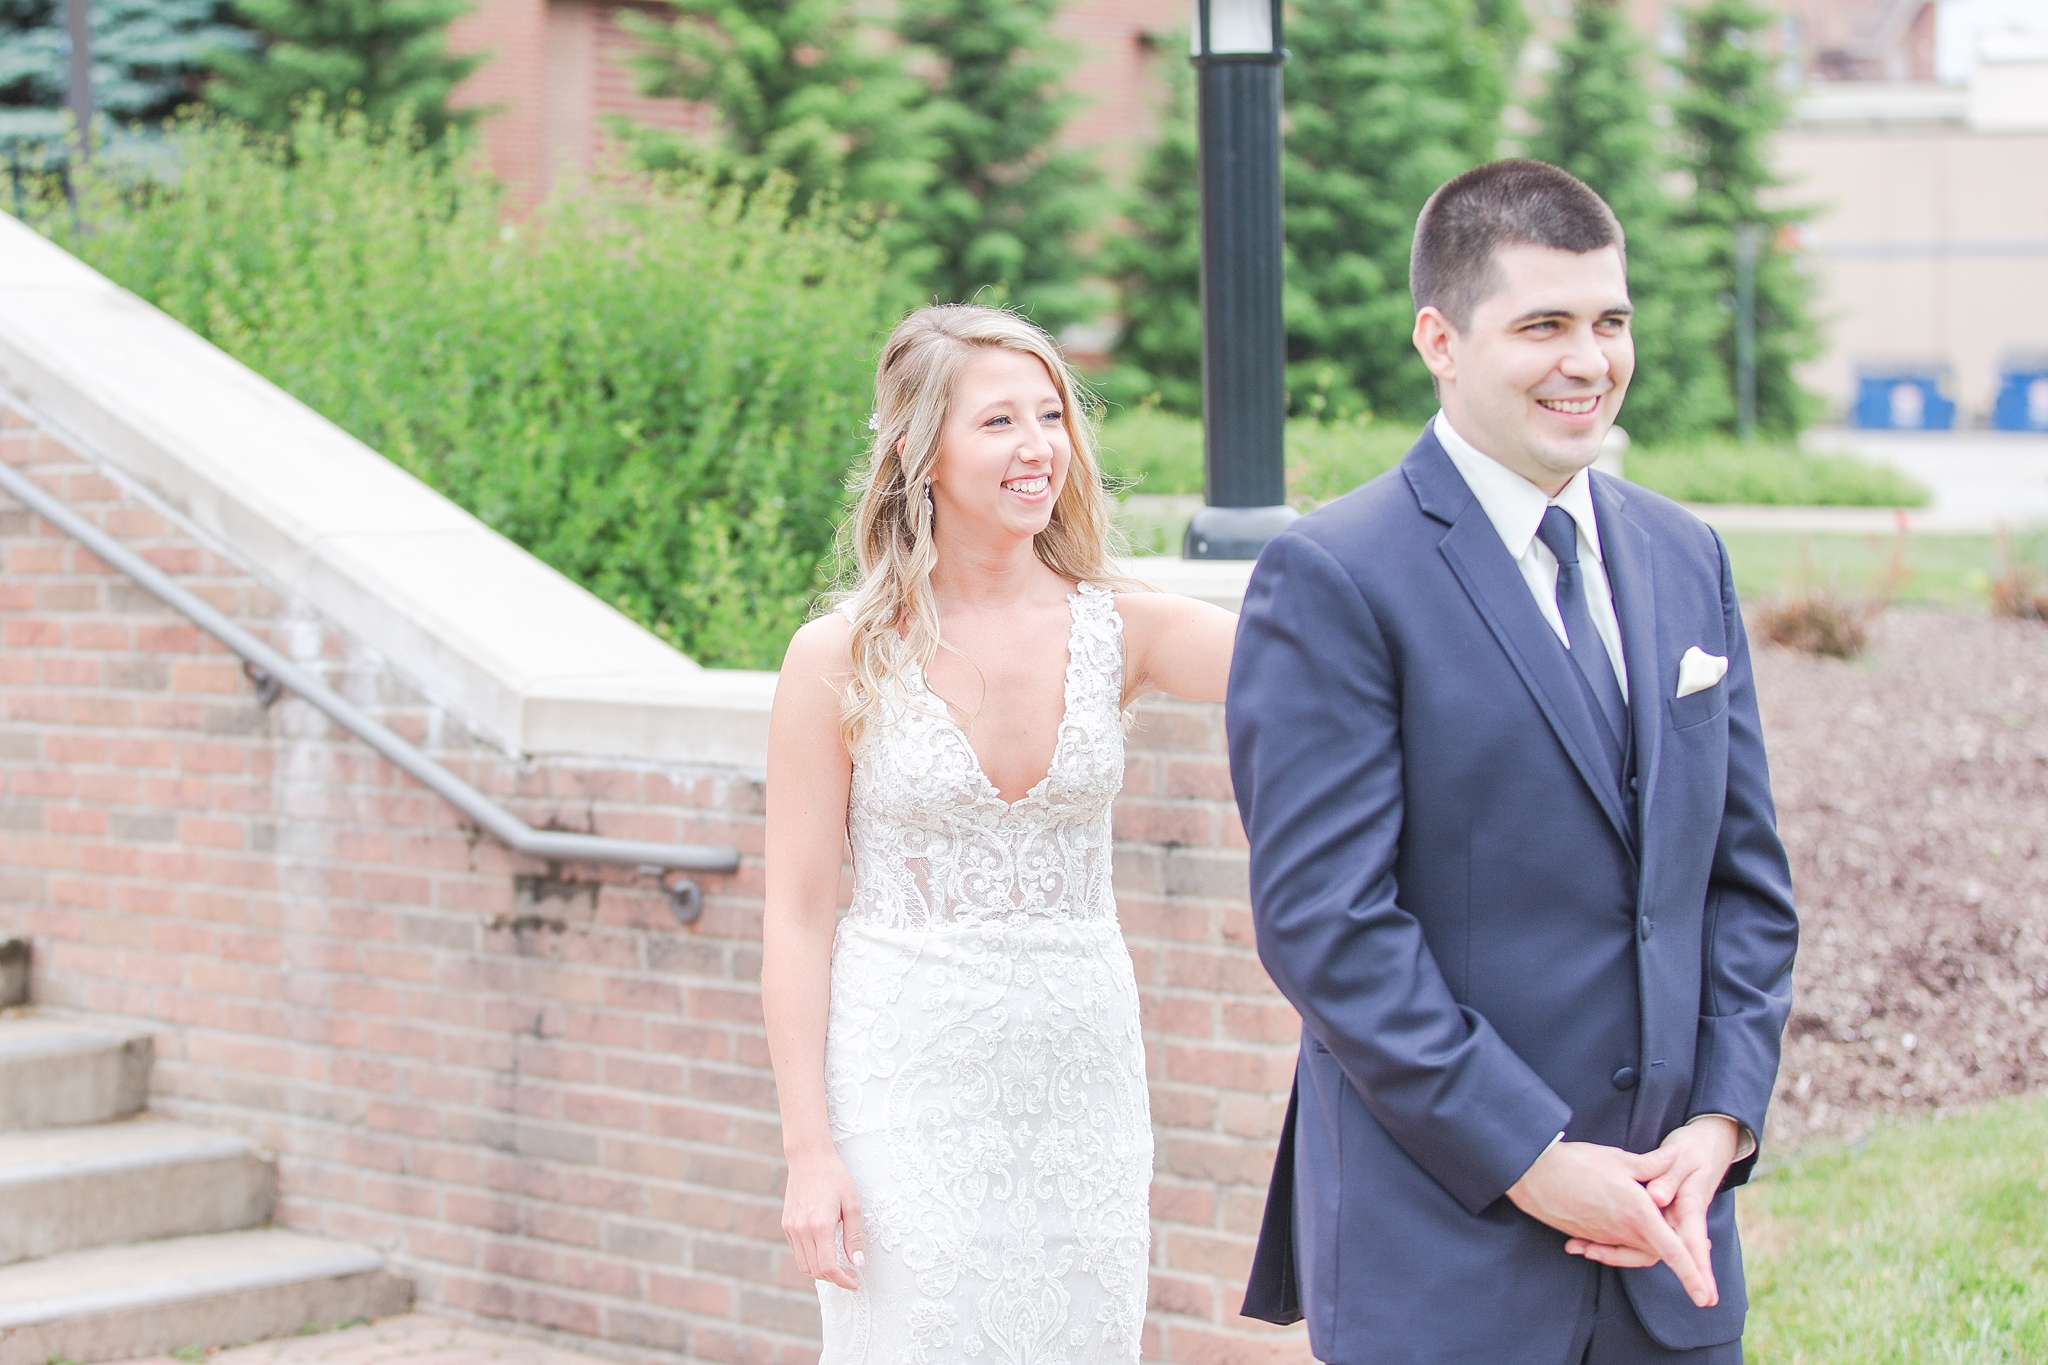 candid-romantic-wedding-photos-at-the-h-hotel-in-midland-michigan-by-courtney-carolyn-photography_0025.jpg